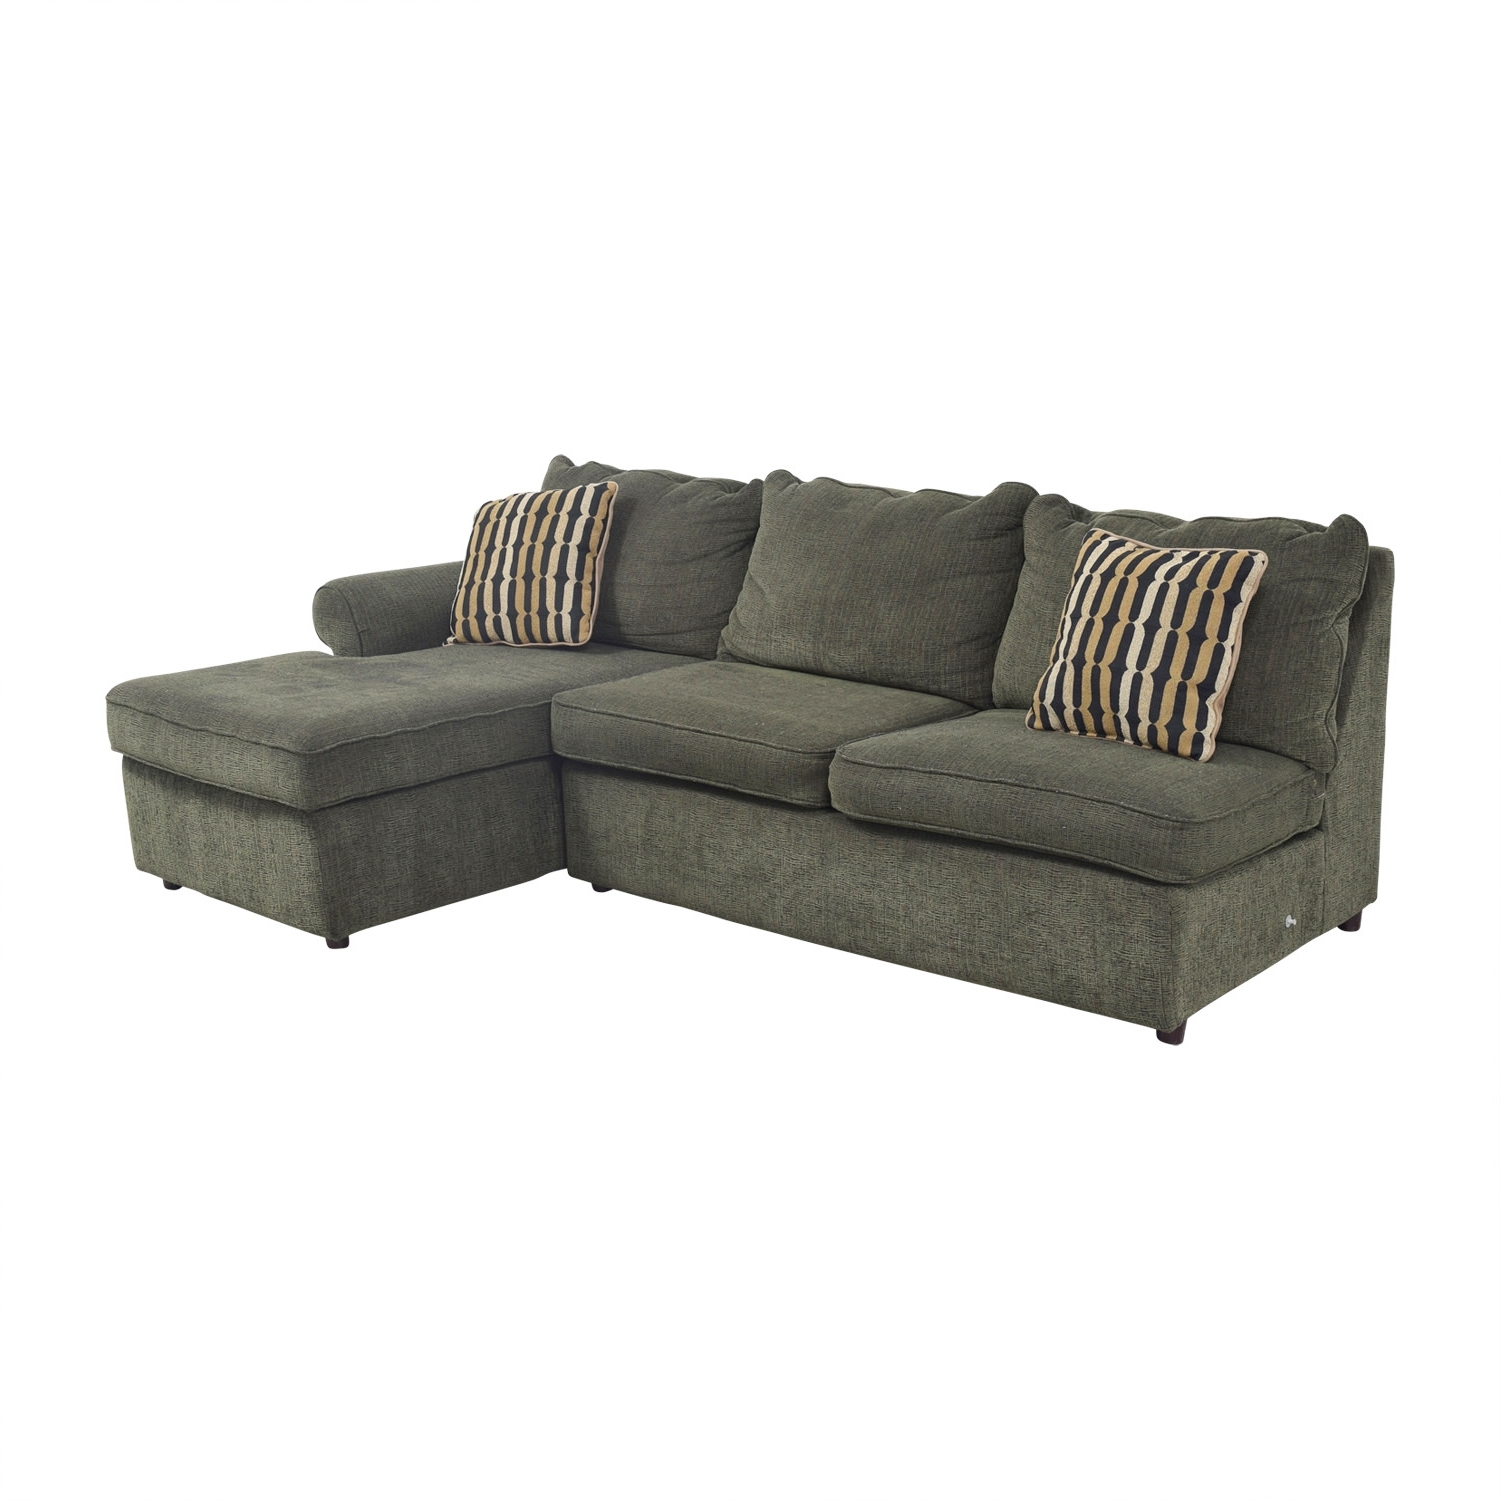 [%64% Off – La Z Boy La Z Boy Forest Green L Shaped Sectional Couch Within Fashionable La Z Boy Sectional Sofas|La Z Boy Sectional Sofas Pertaining To Most Popular 64% Off – La Z Boy La Z Boy Forest Green L Shaped Sectional Couch|Most Recent La Z Boy Sectional Sofas For 64% Off – La Z Boy La Z Boy Forest Green L Shaped Sectional Couch|2017 64% Off – La Z Boy La Z Boy Forest Green L Shaped Sectional Couch For La Z Boy Sectional Sofas%] (View 7 of 15)